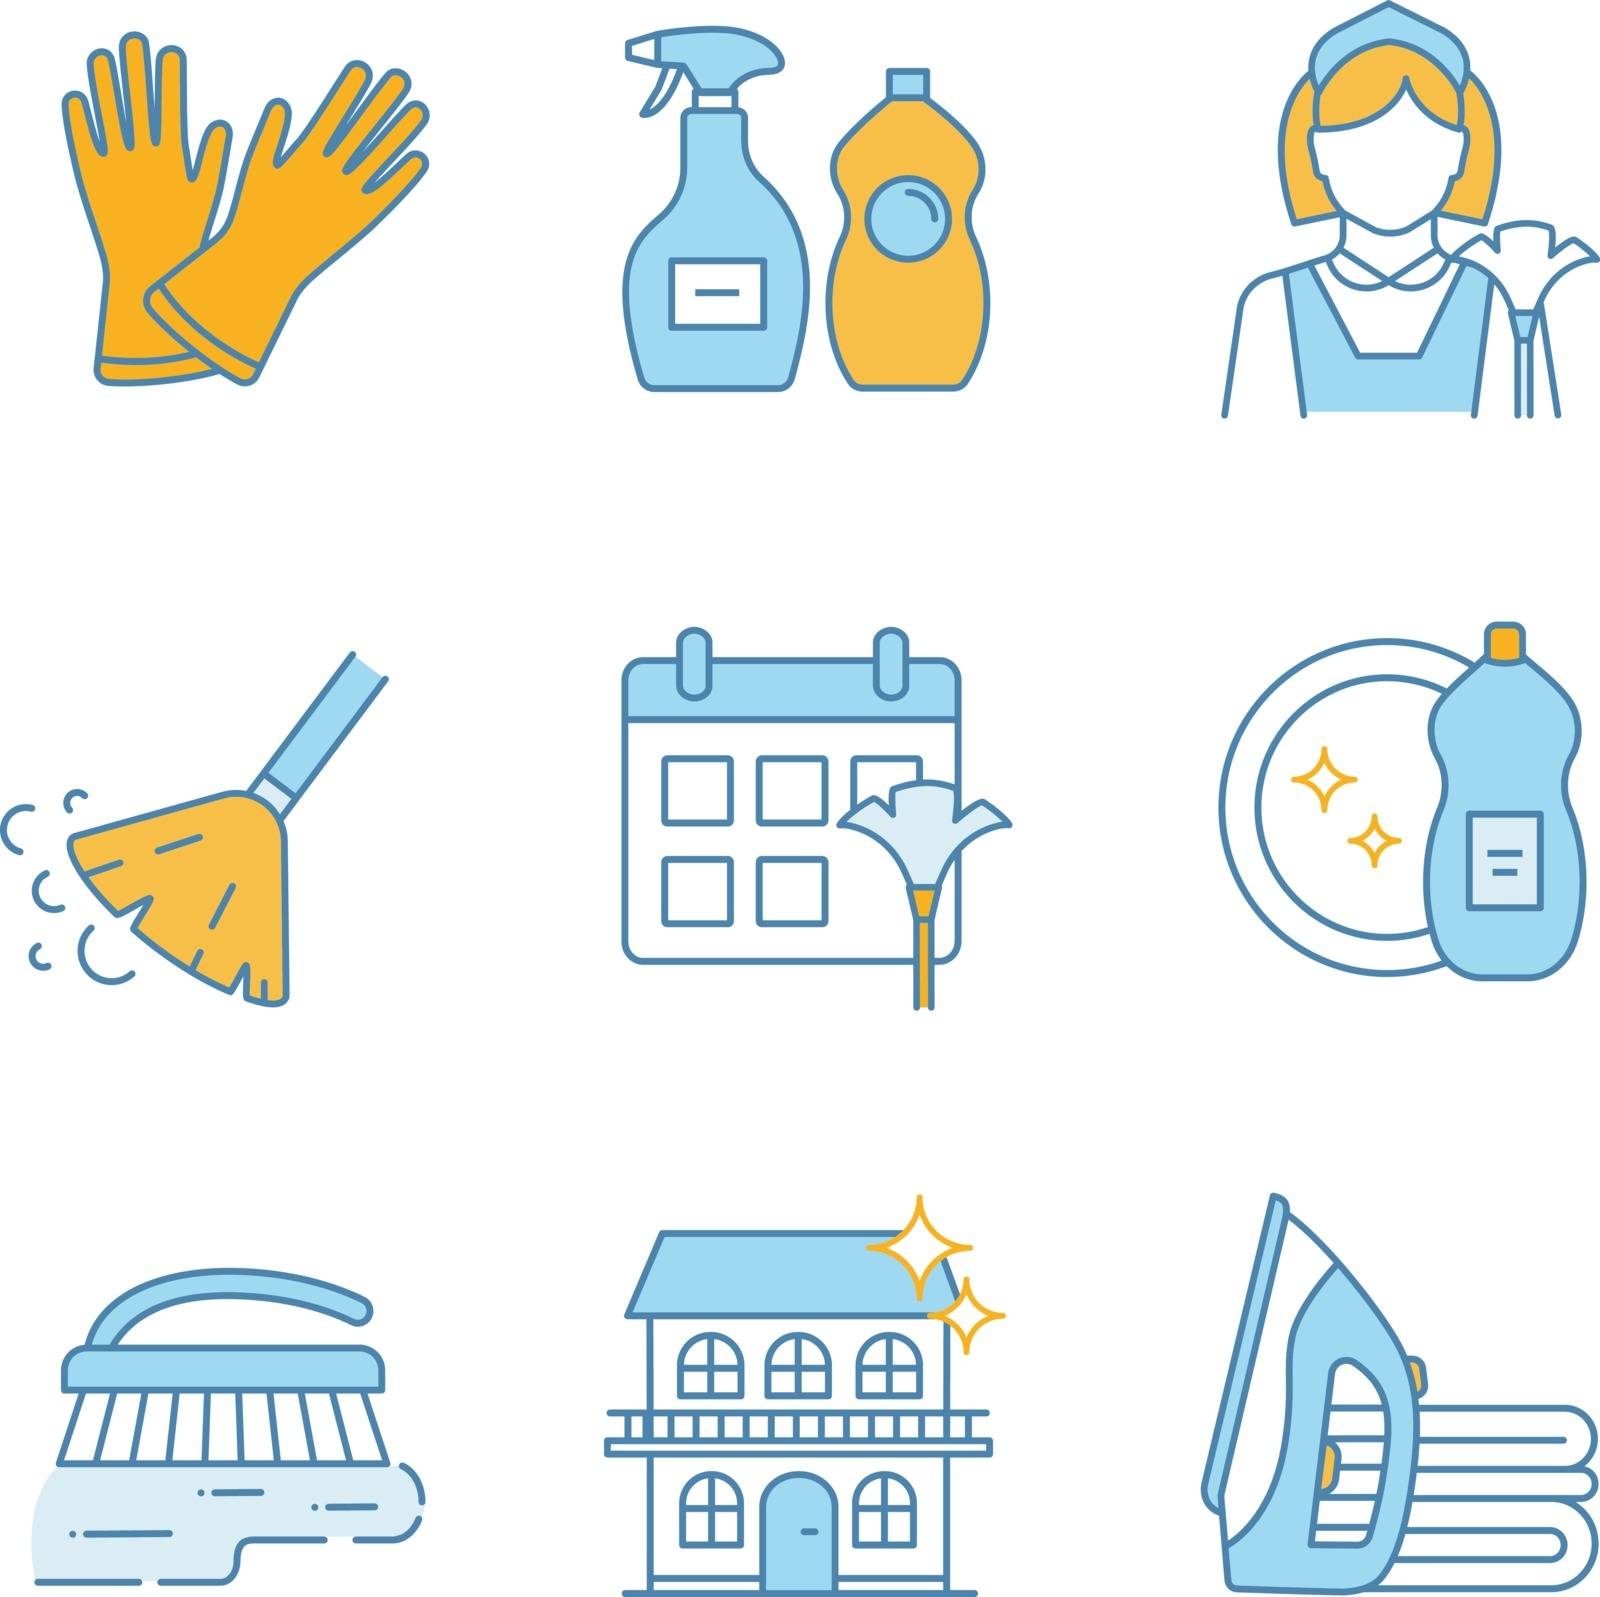 Cleaning service color icons set. Household gloves, detergents, maid, broom, schedule, dishwash, scrub brush, ironing, house cleaning. Isolated vector illustrations